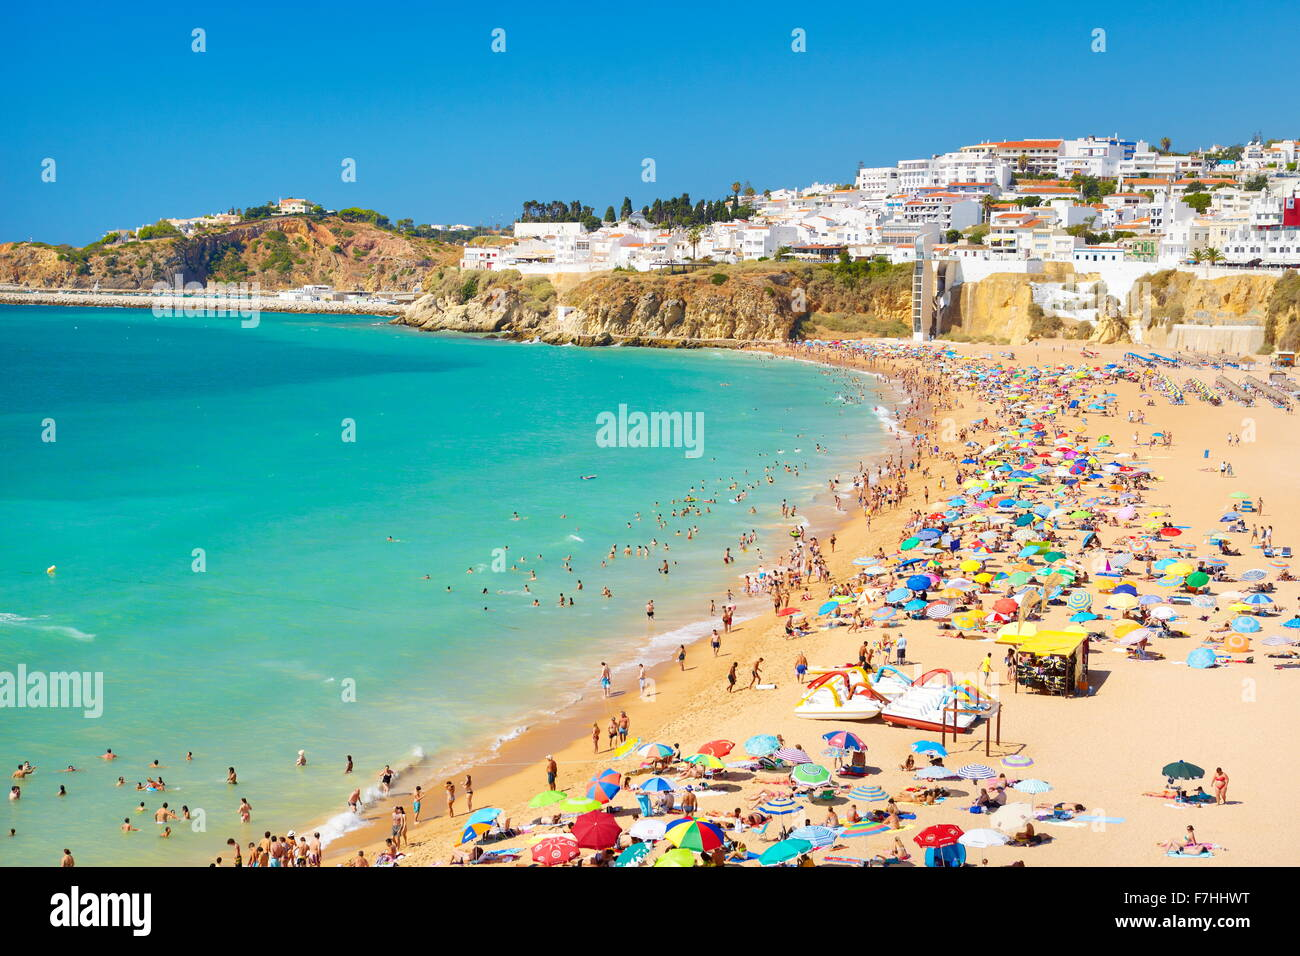 Albufeira Beach, Algarve coast, Portugal Stock Photo